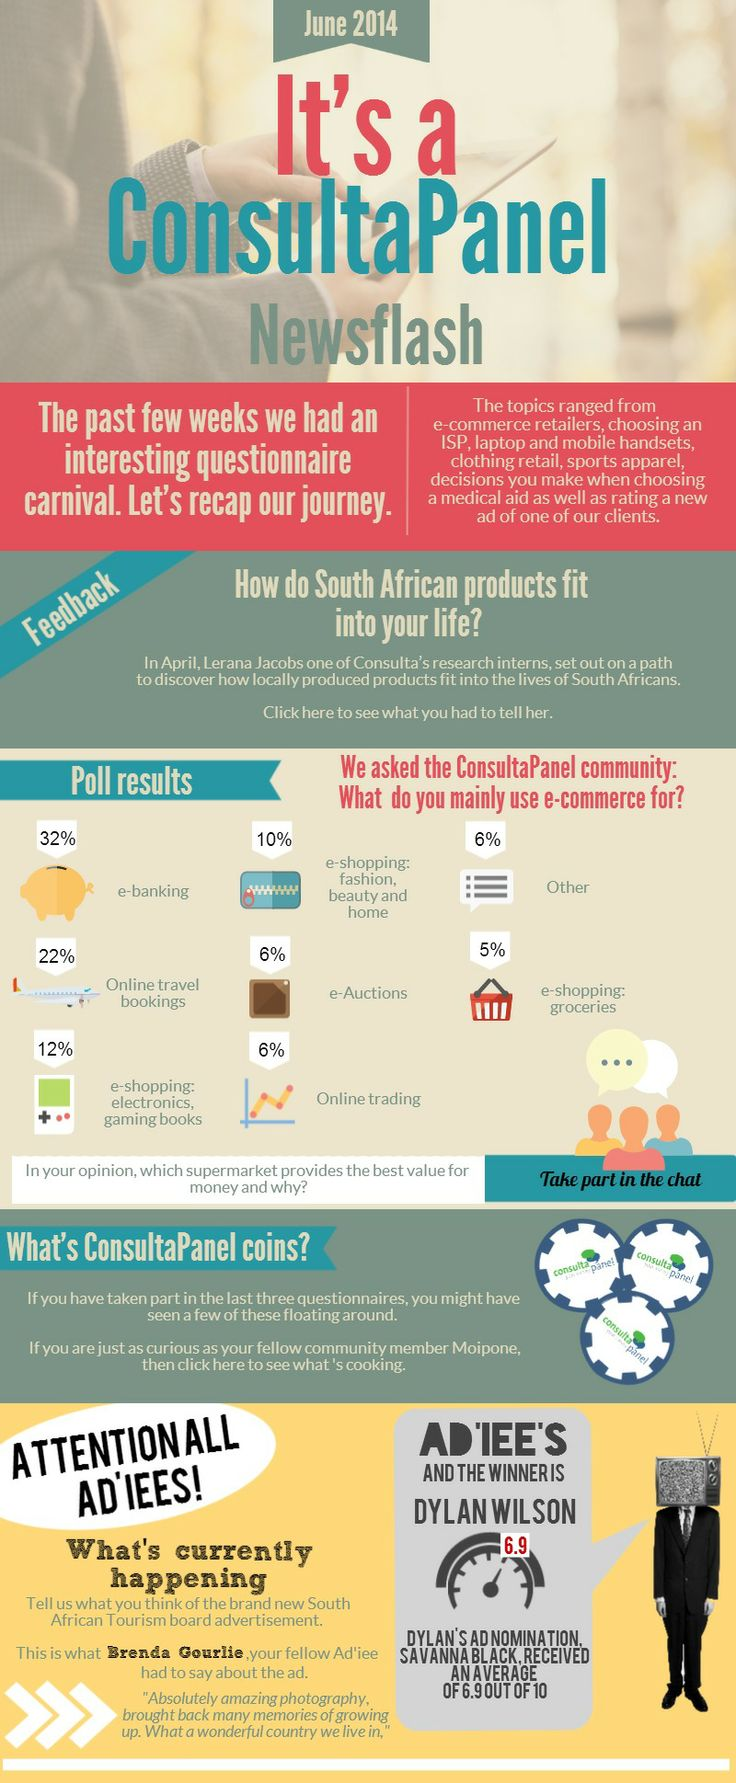 Check out our new Newsflash! http://www.consultapanel.co.za/newsletters/issue_27/issue%2027.html